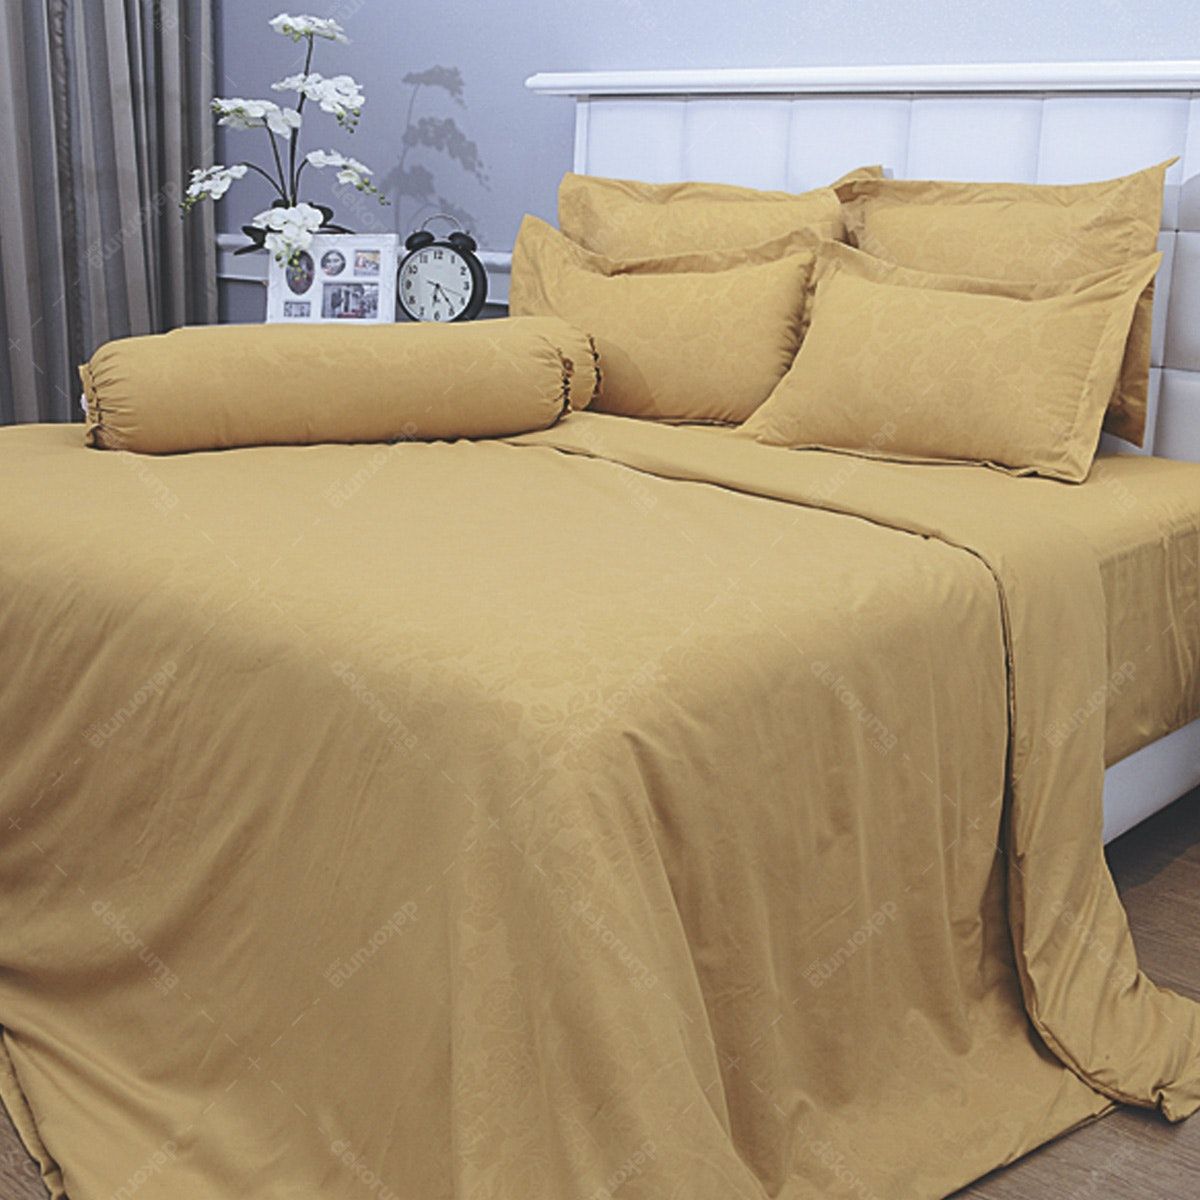 Vallery Quincy Bed Cover Golden BC 245x225cm